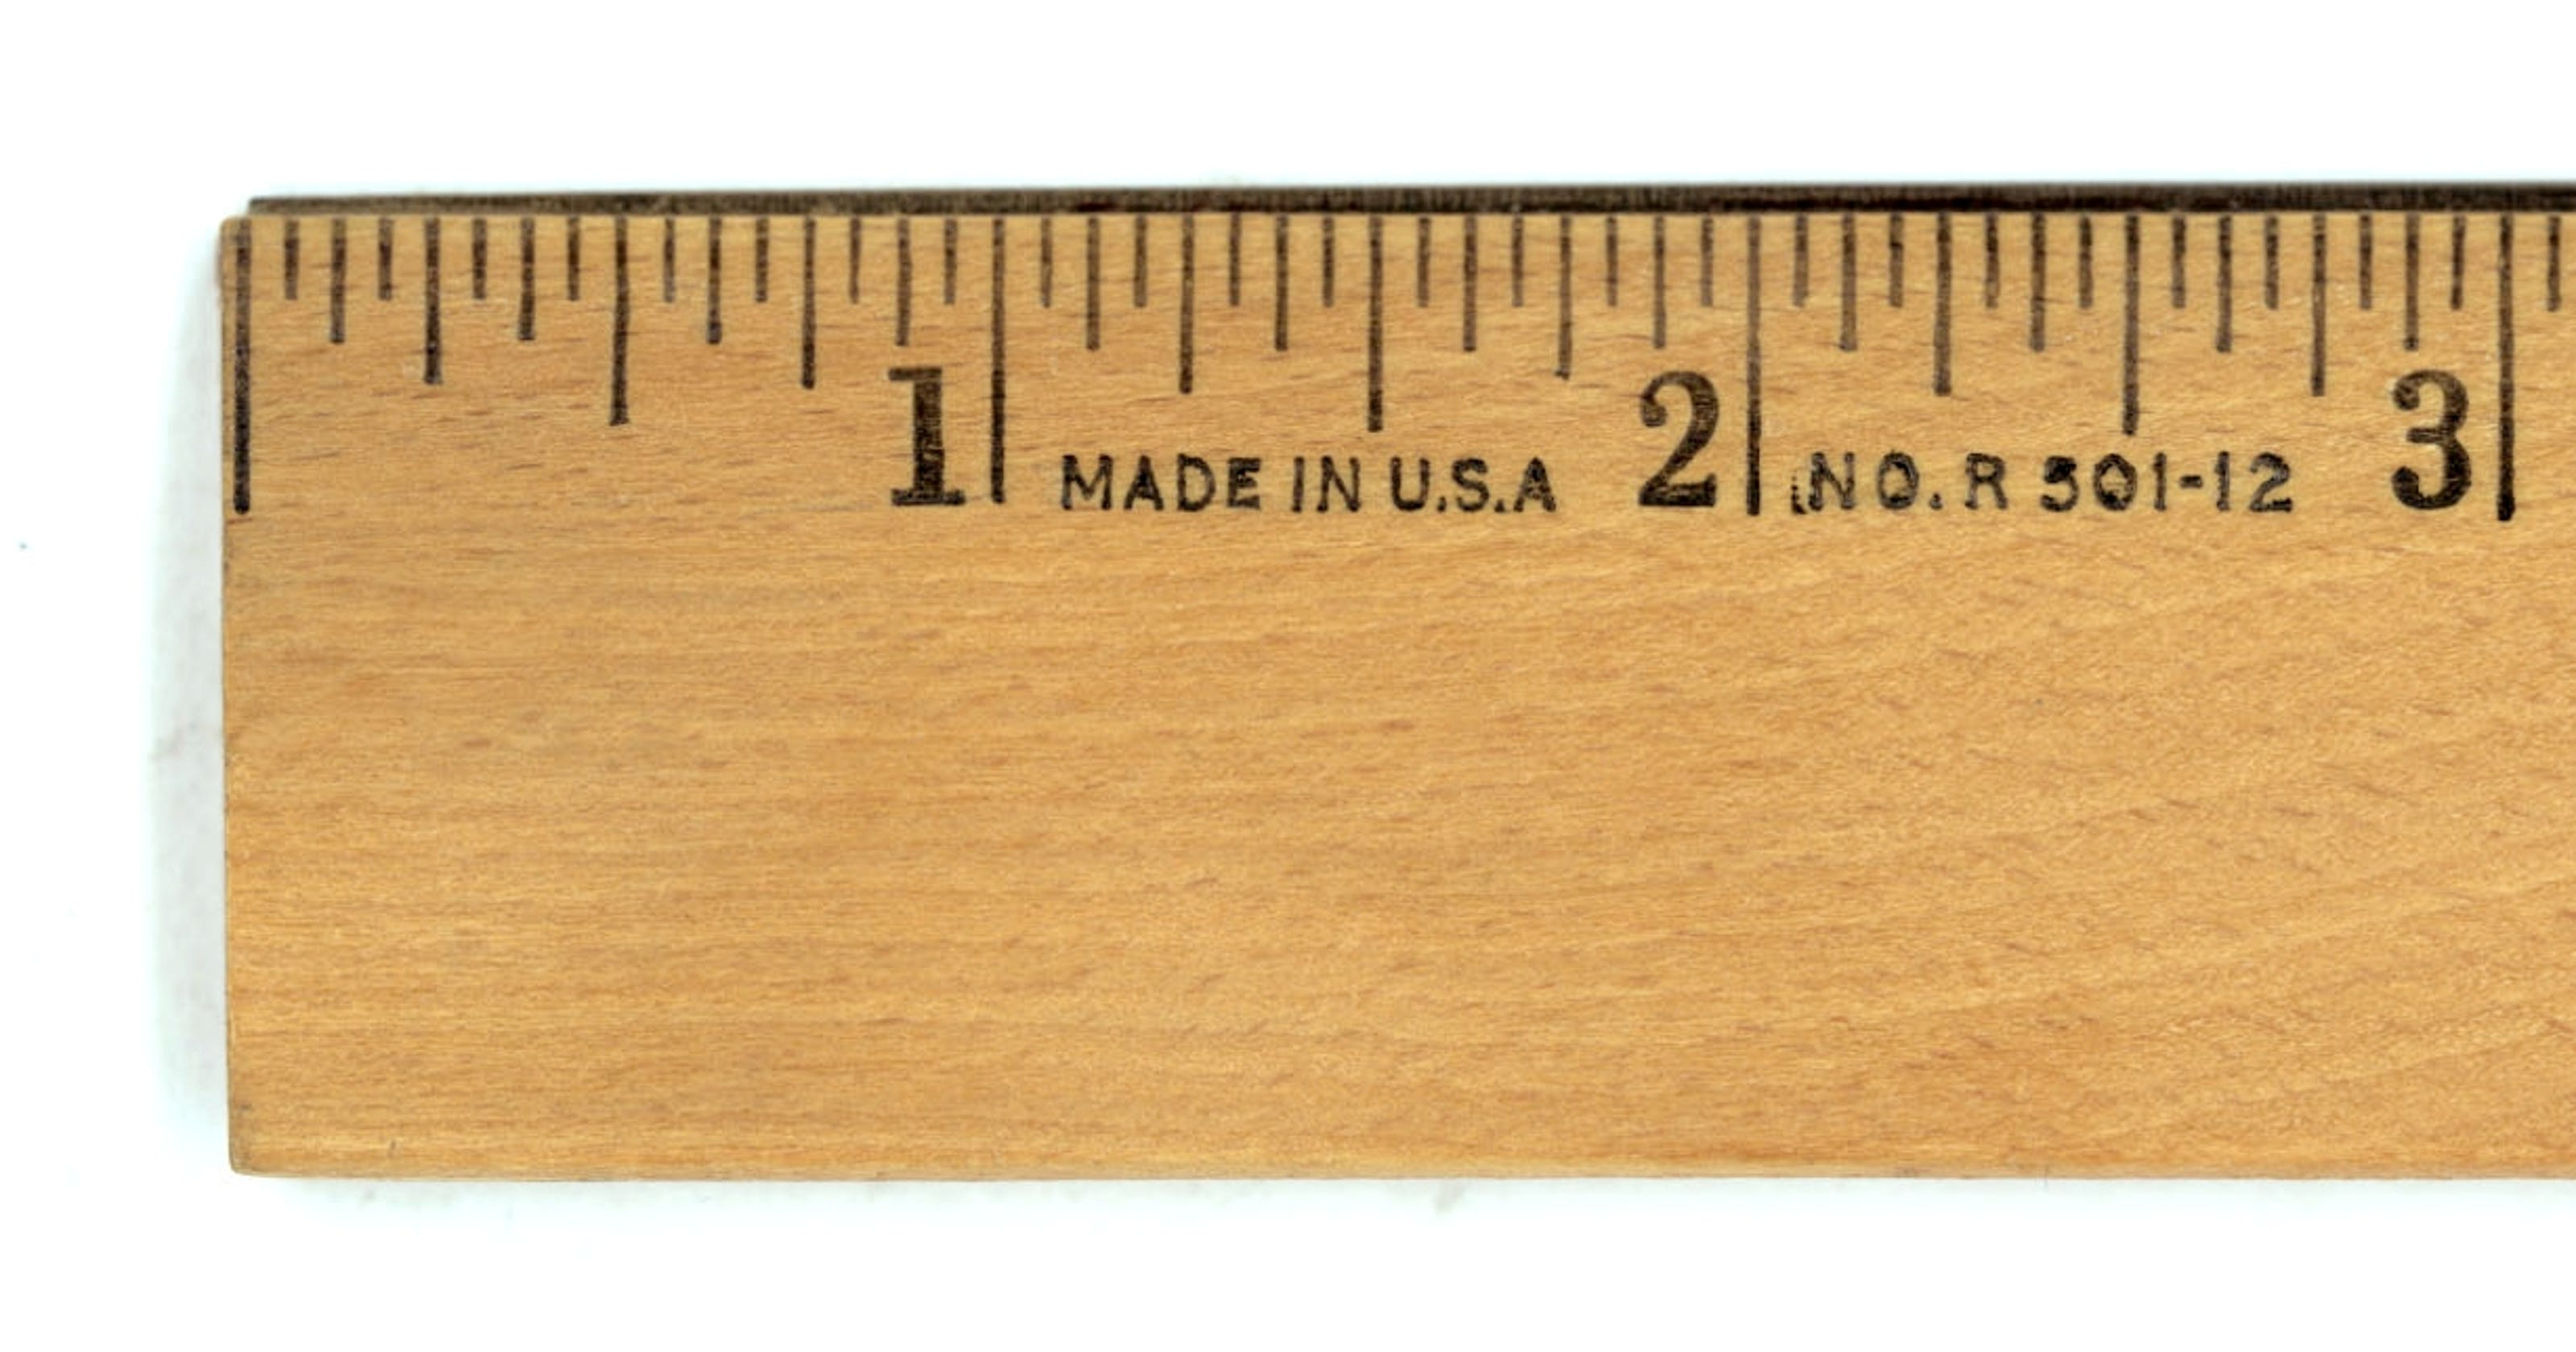 Actual size of 1 inch